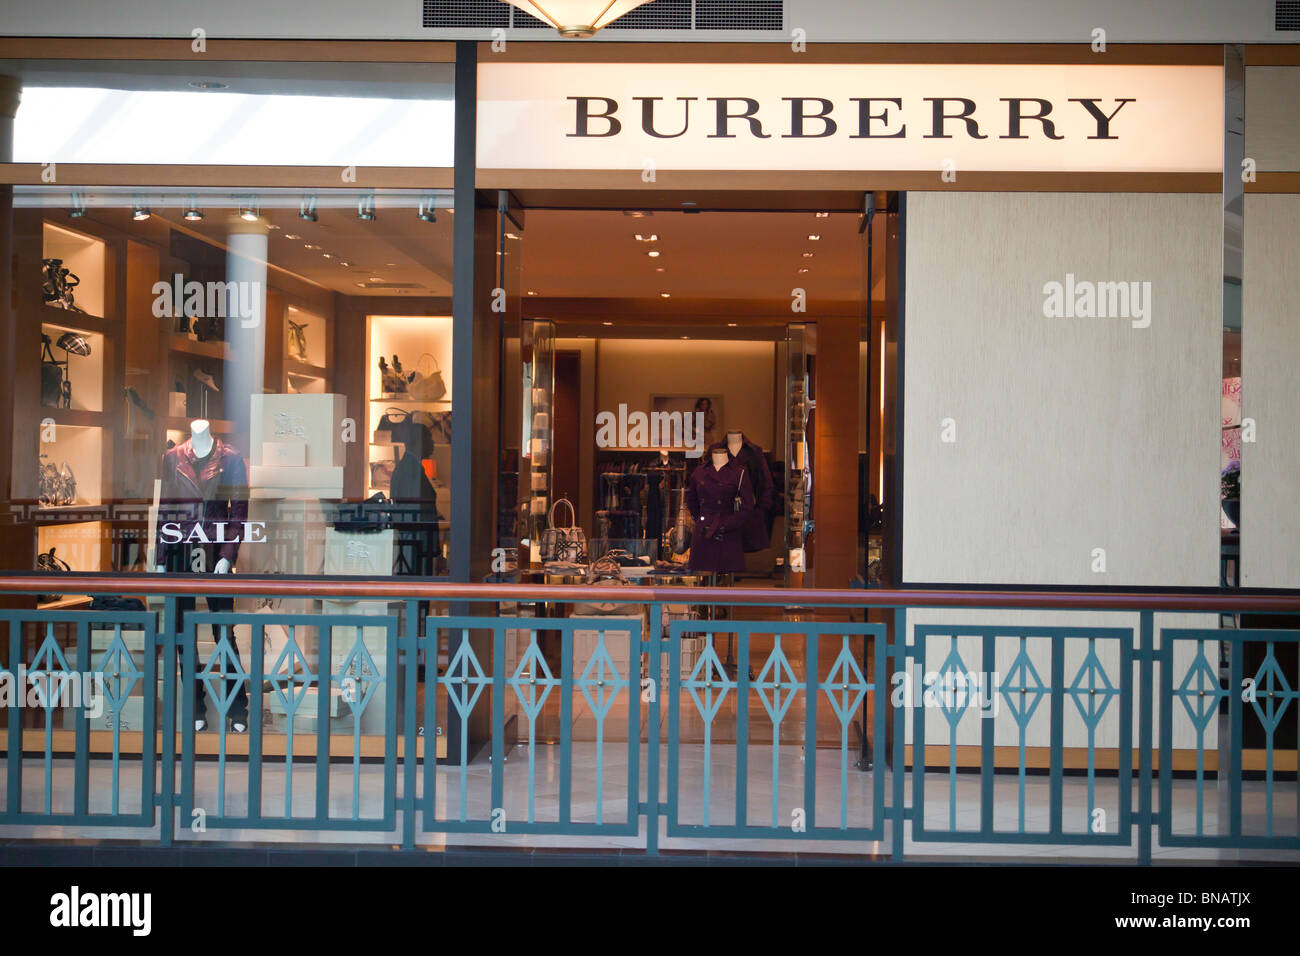 burberry store outlet xihk  Burberry store, King of Prussia Mall, near Philadelphia, PA, USA